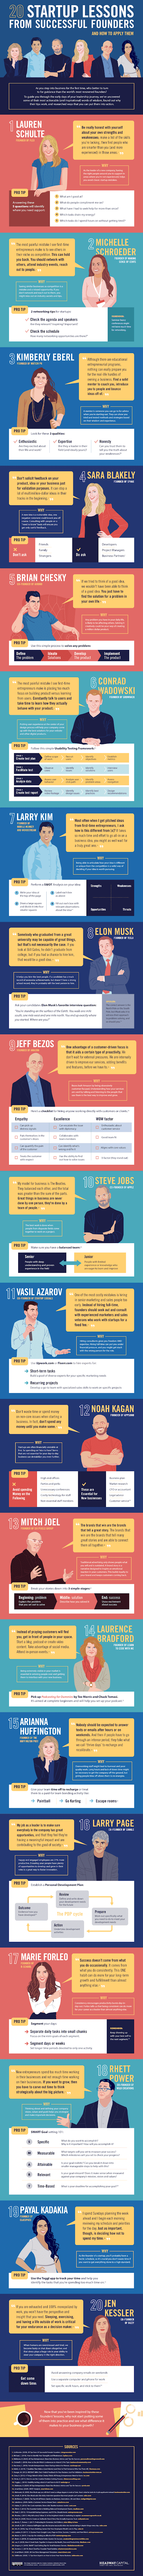 20 Start-up Lessons from Successful Founders and How to Apply Them #infographic #Success #infographics #Successful Founders #Successful People